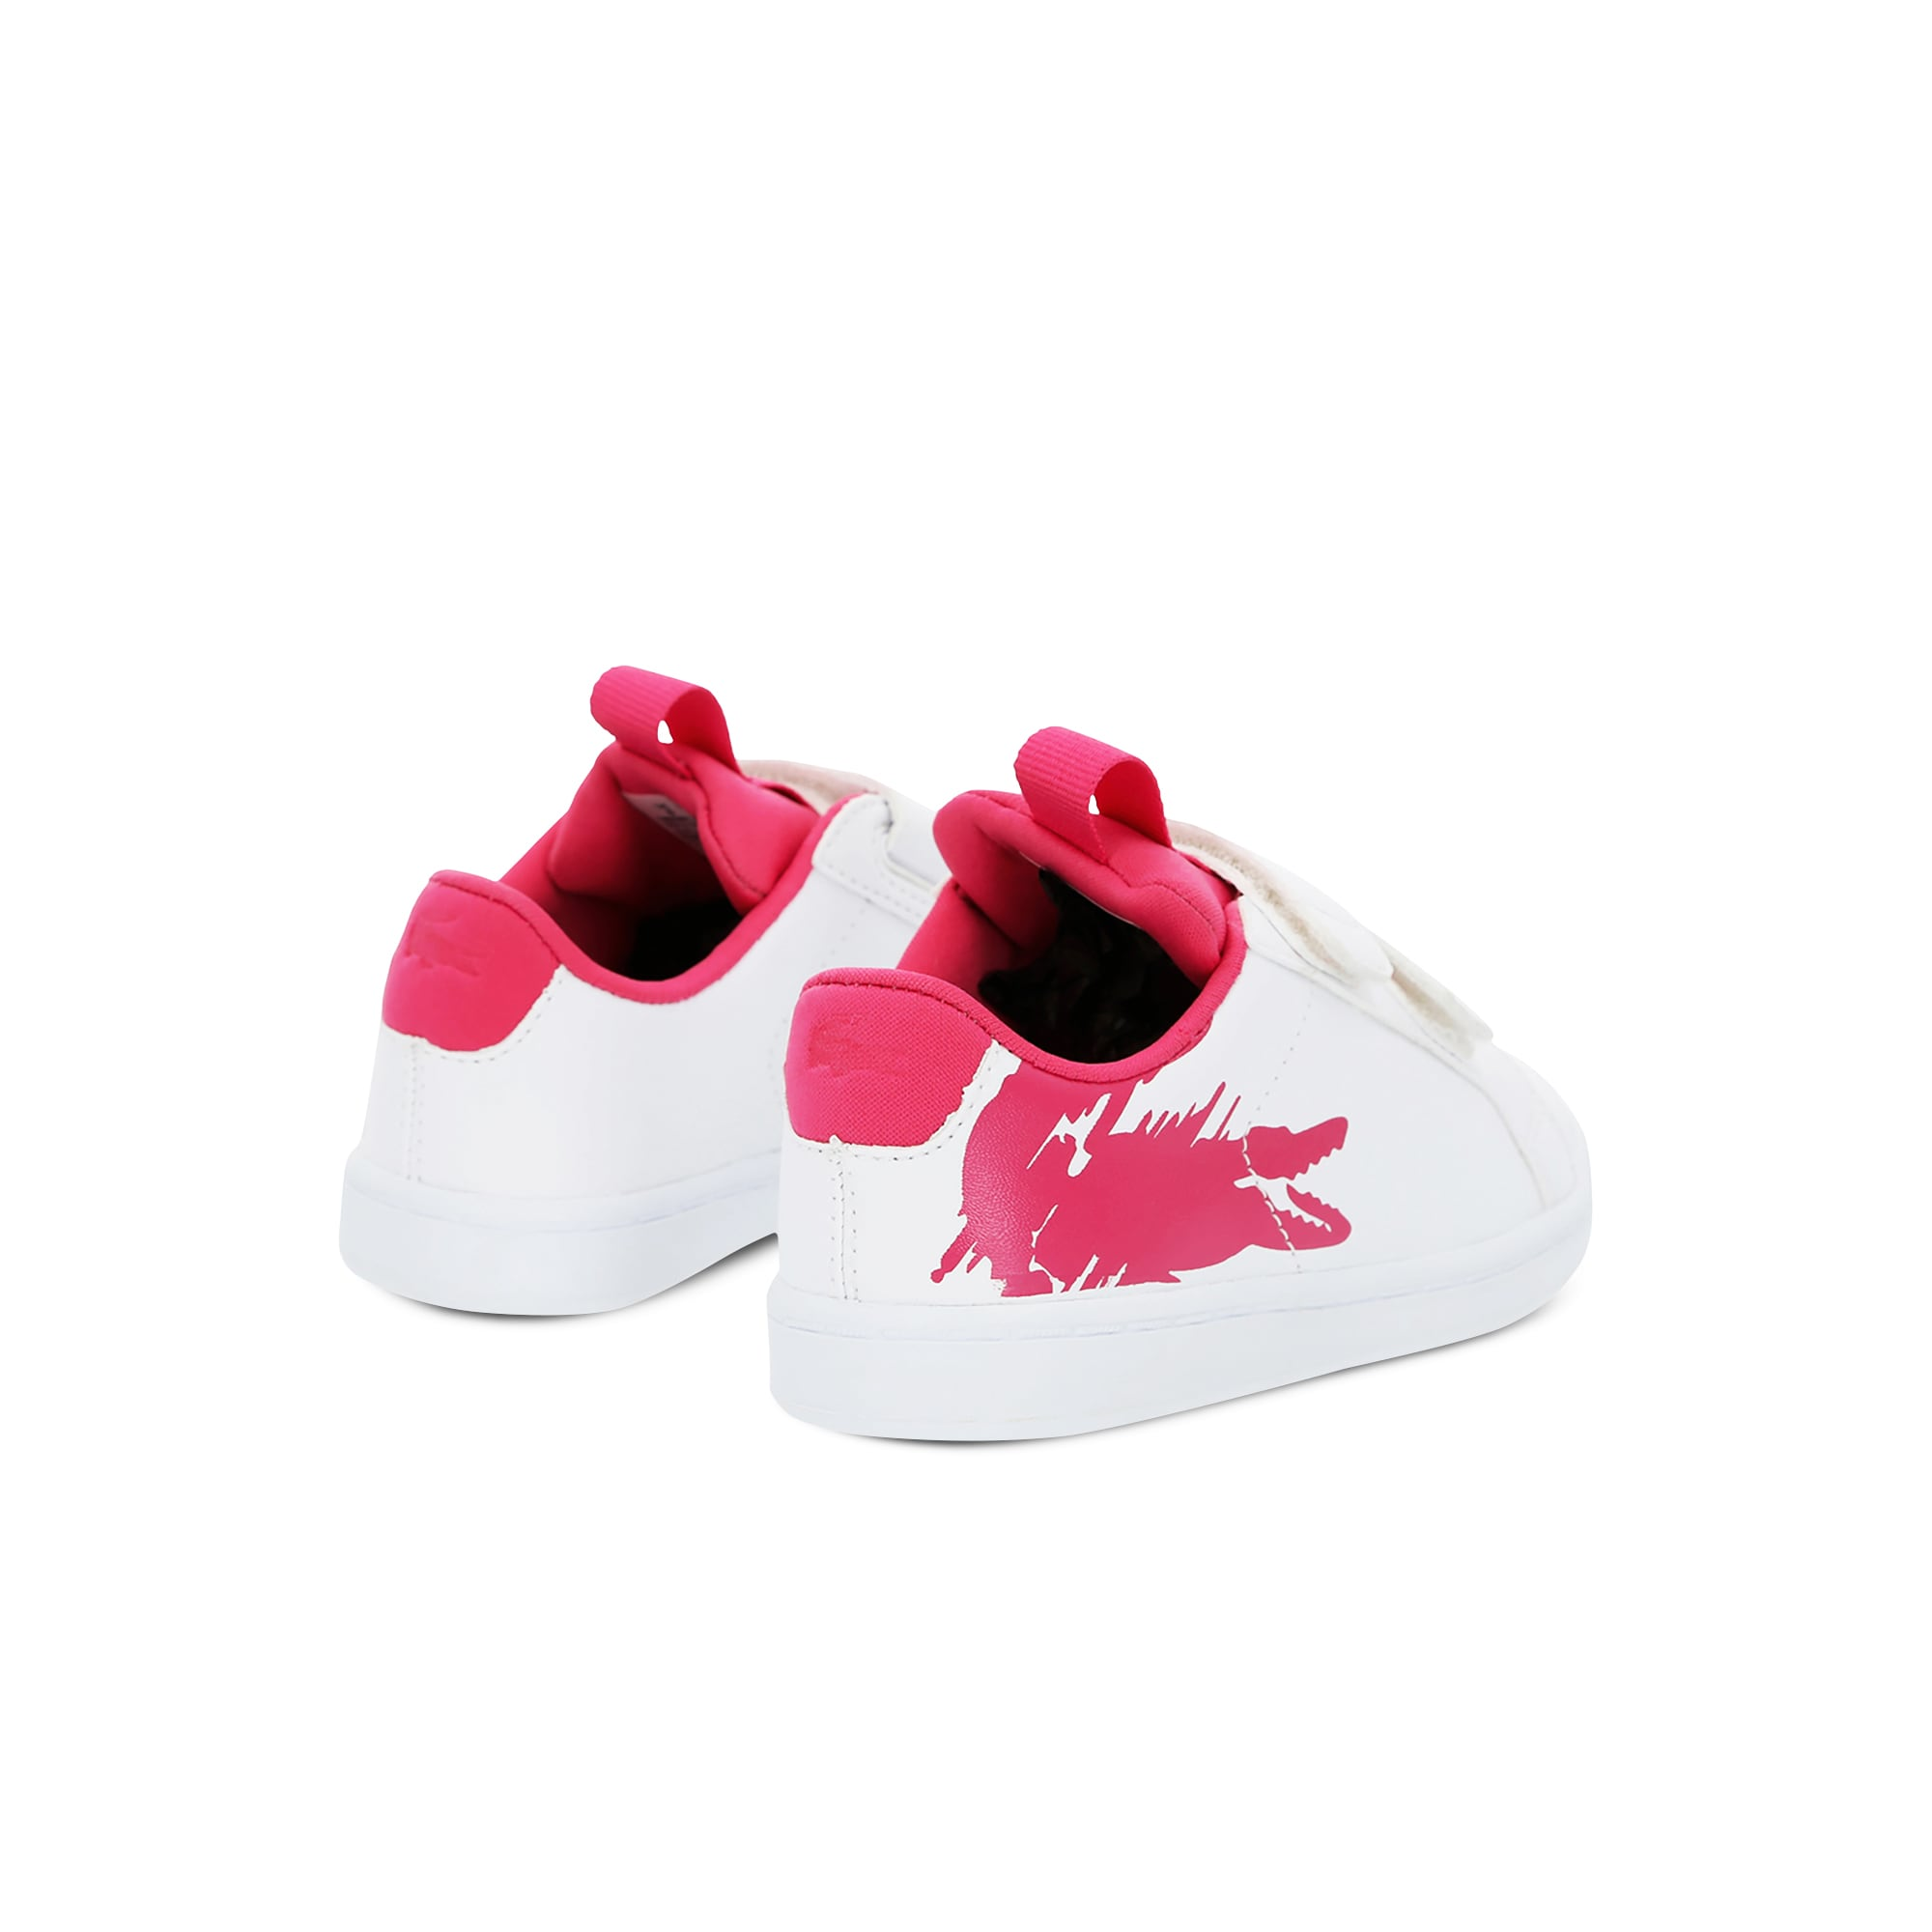 Infants' Carnaby Evo Graphic Crocodile Sneakers